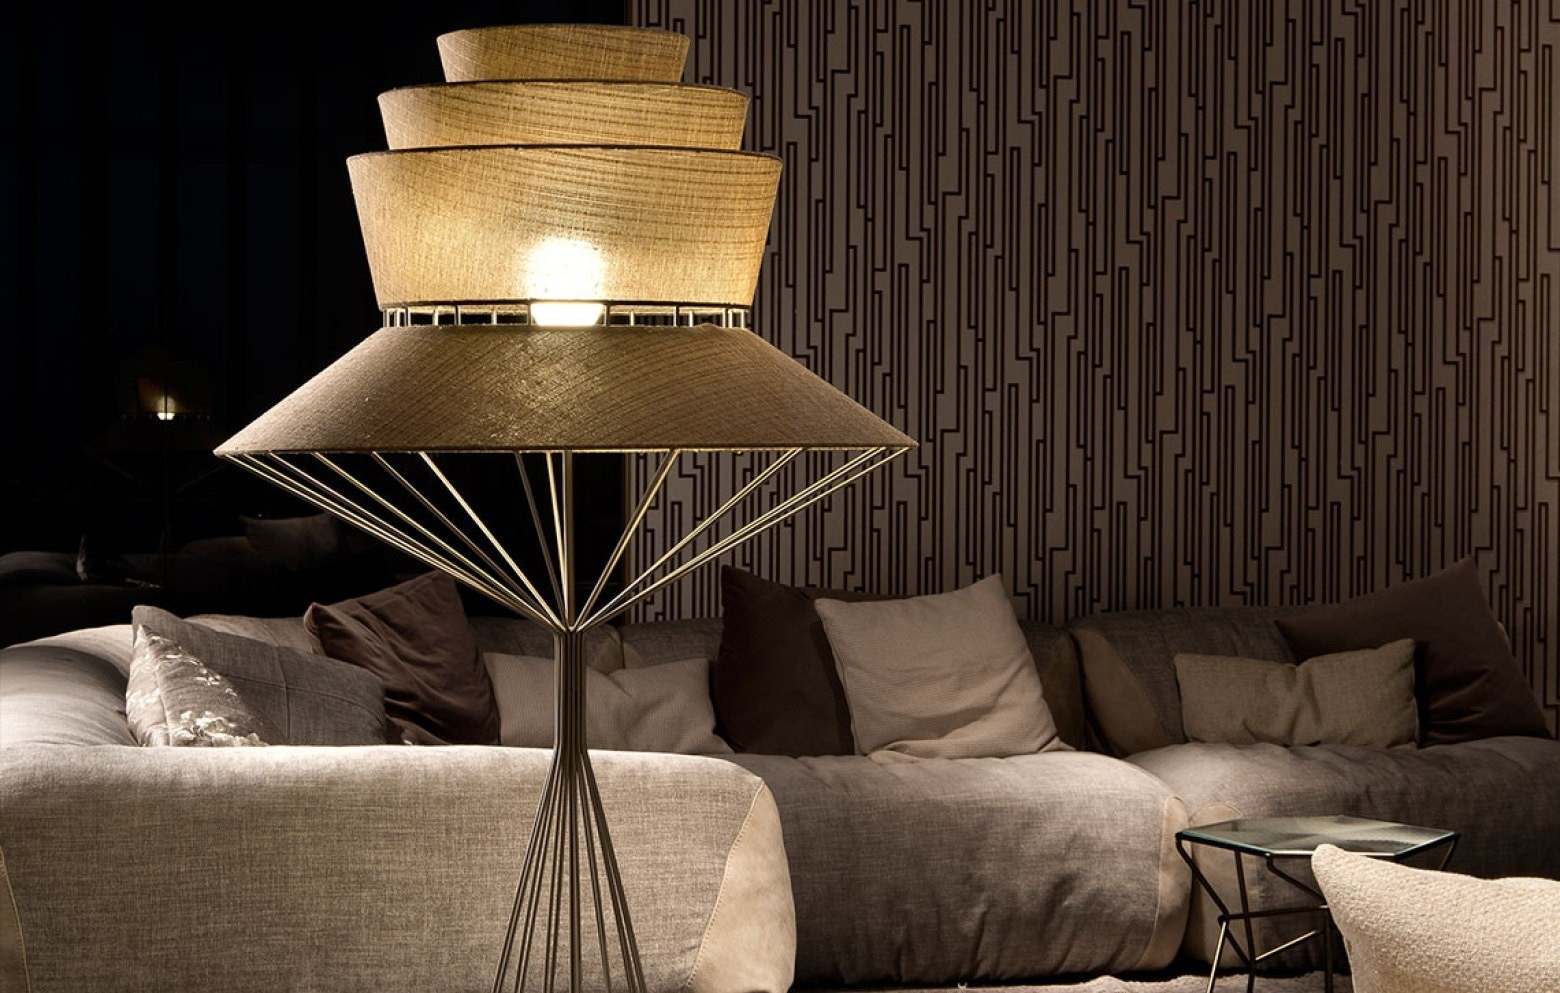 bolero stehlampe lampen kleinm bel accessoires who 39 s perfect. Black Bedroom Furniture Sets. Home Design Ideas